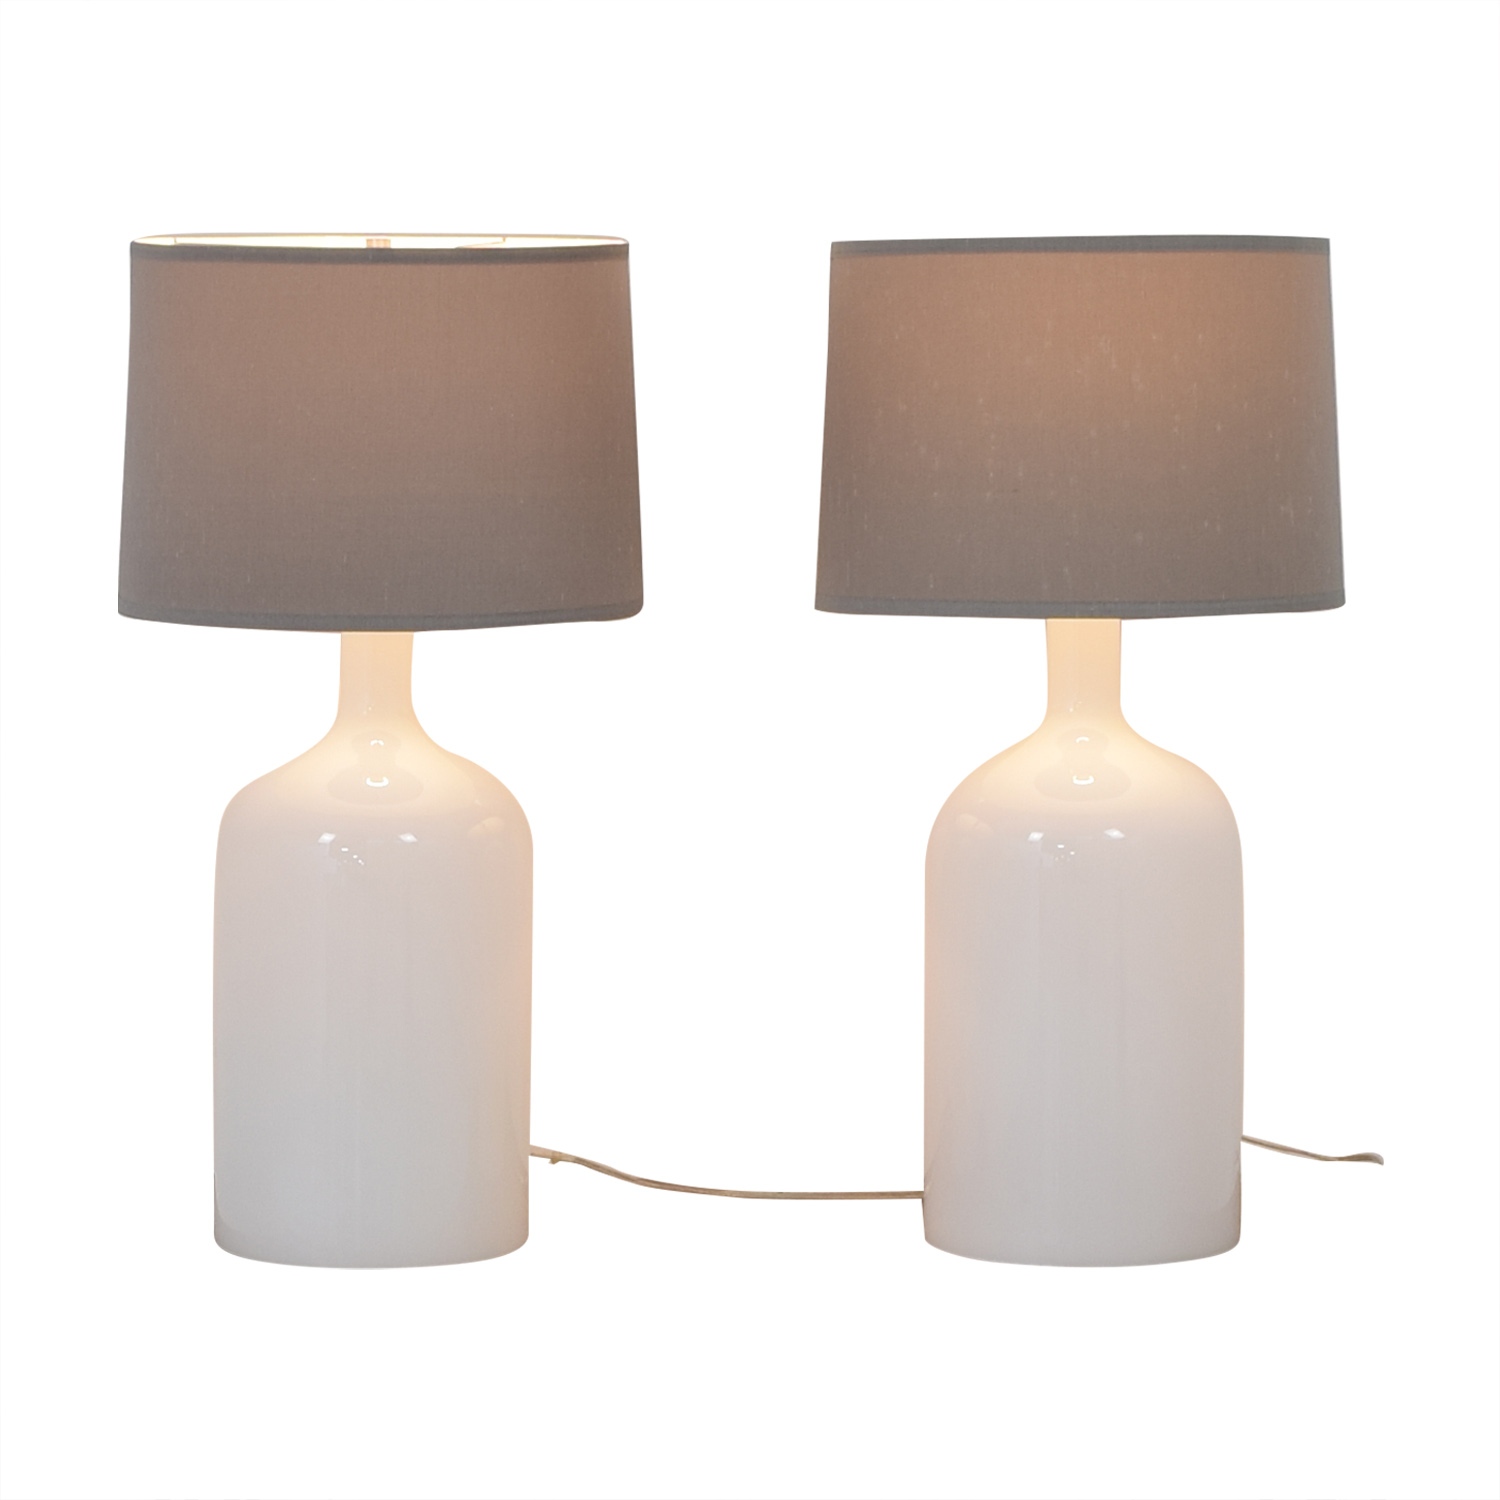 Crate & Barrel Crate & Barrel Della Table Lamps nyc